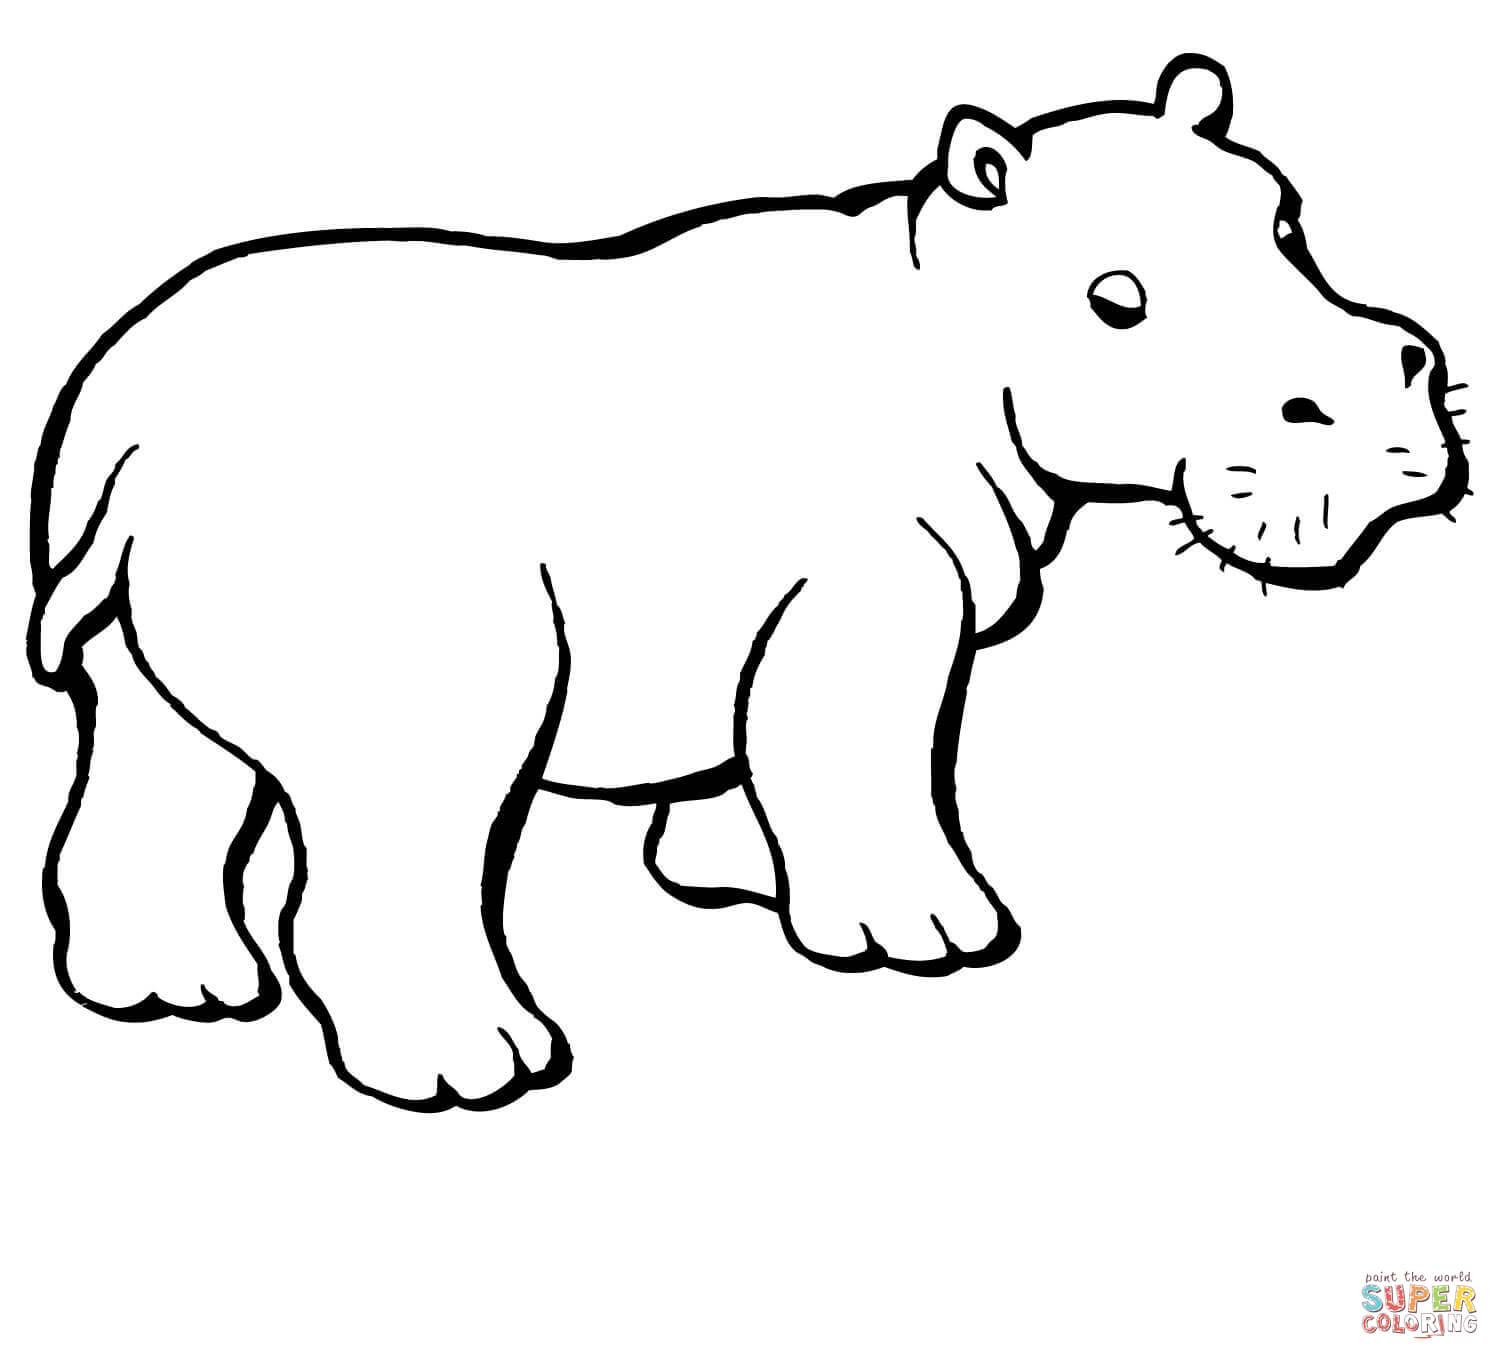 Hippo coloring #6, Download drawings